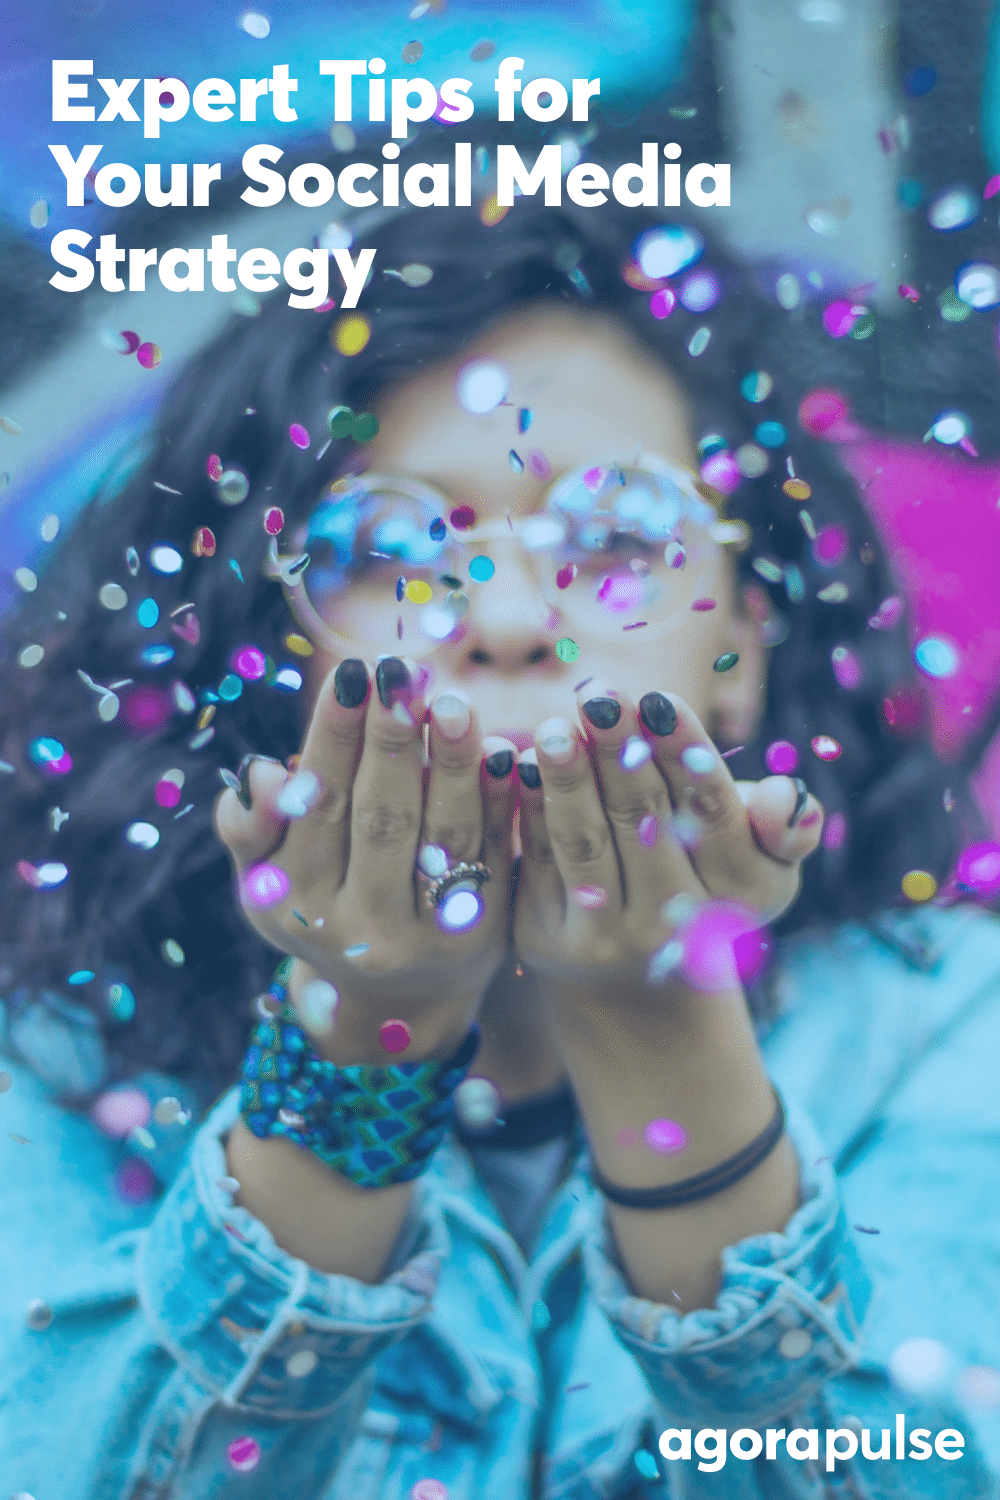 Expert Tips for Your Social Media Strategy in 2021